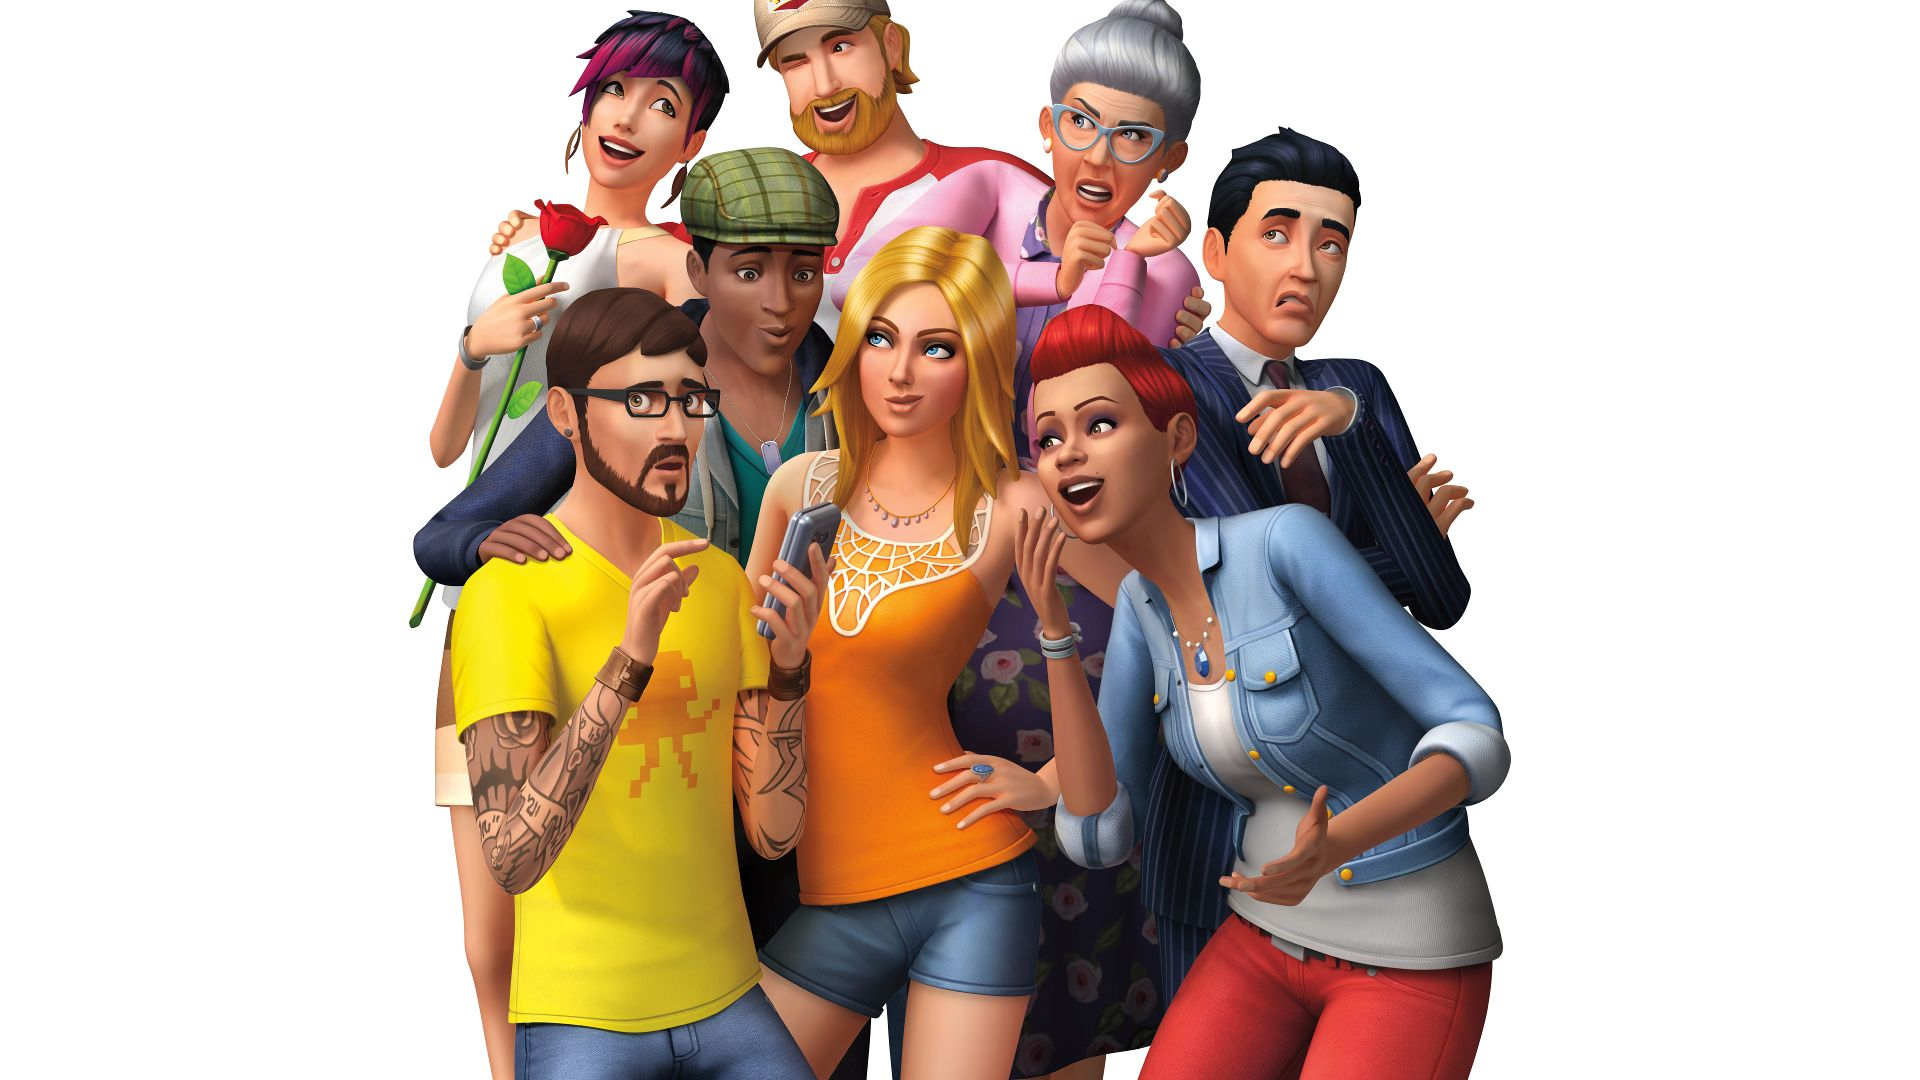 the sims 4 standard